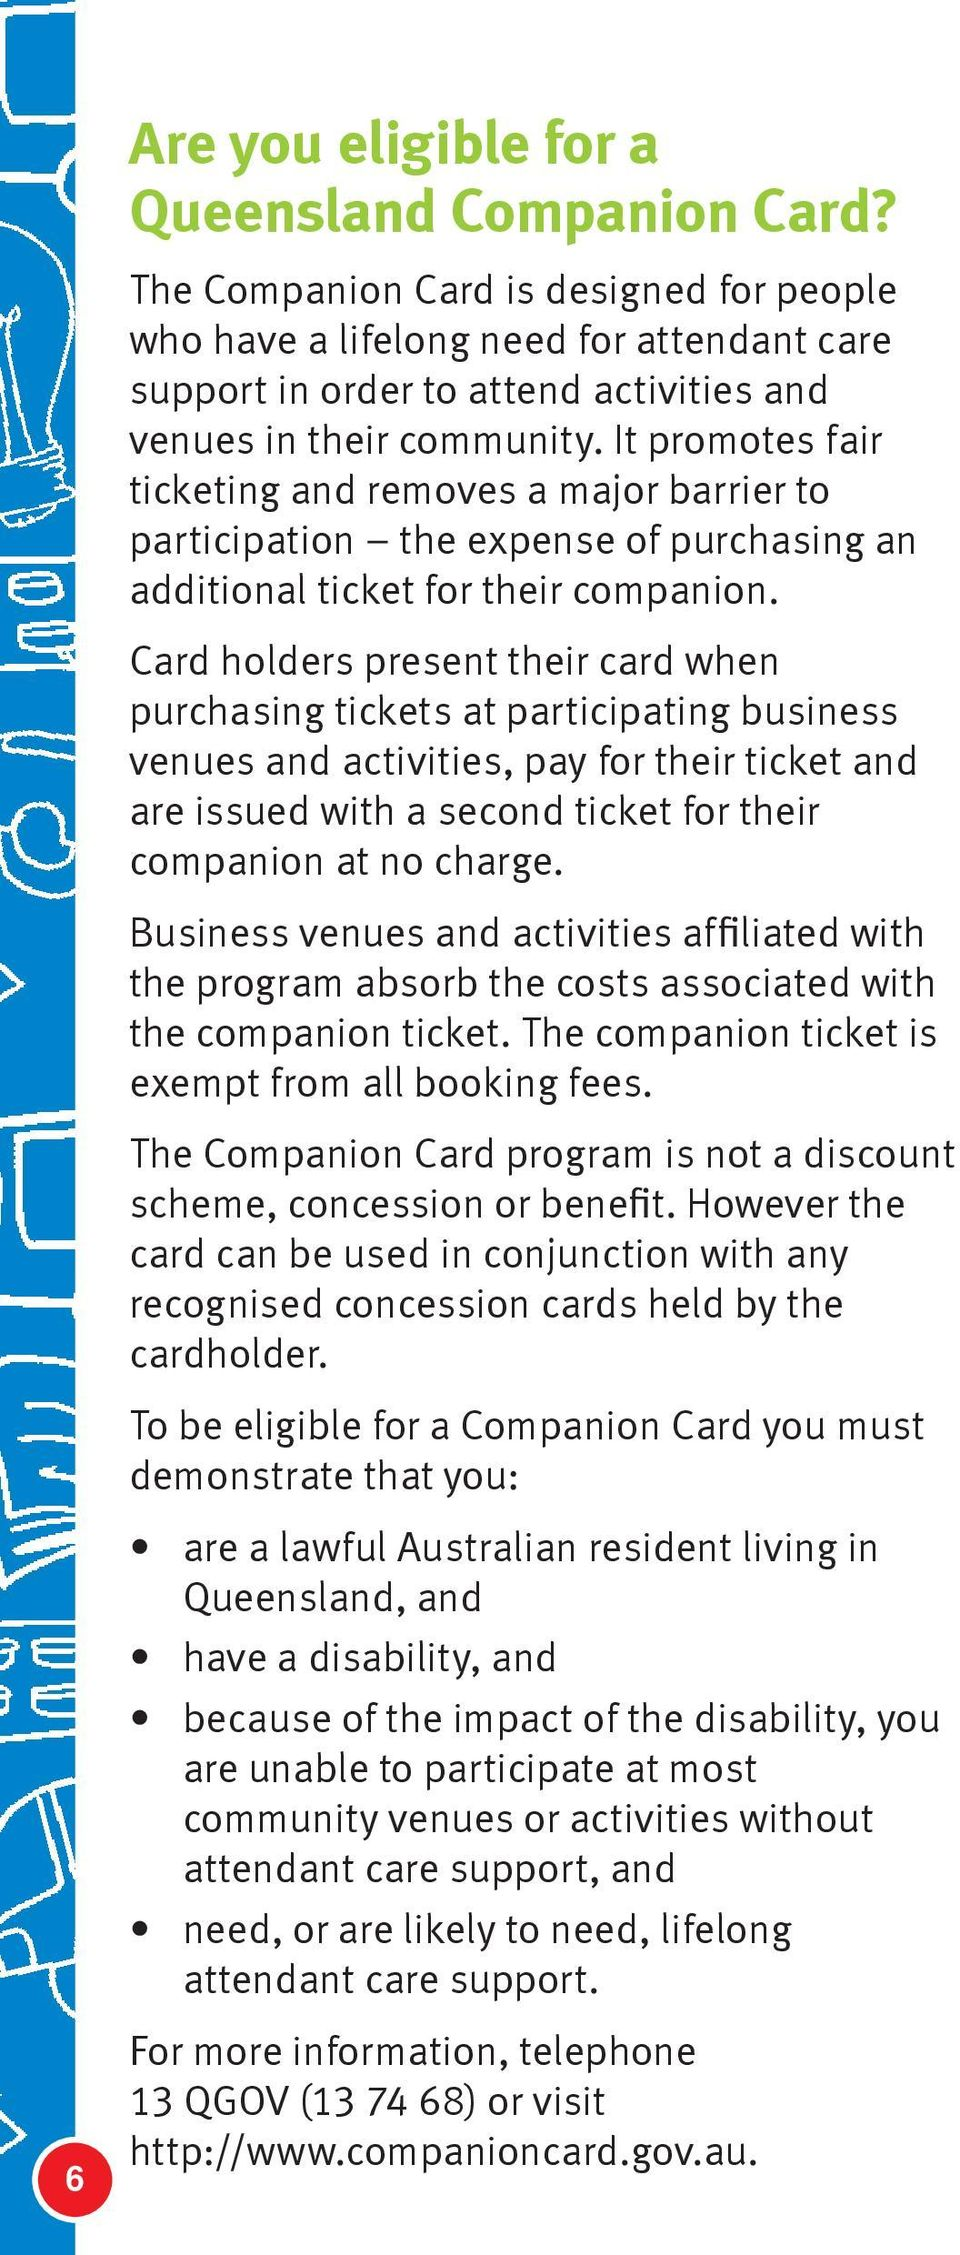 It promotes fair ticketing and removes a major barrier to participation the expense of purchasing an additional ticket for their companion.